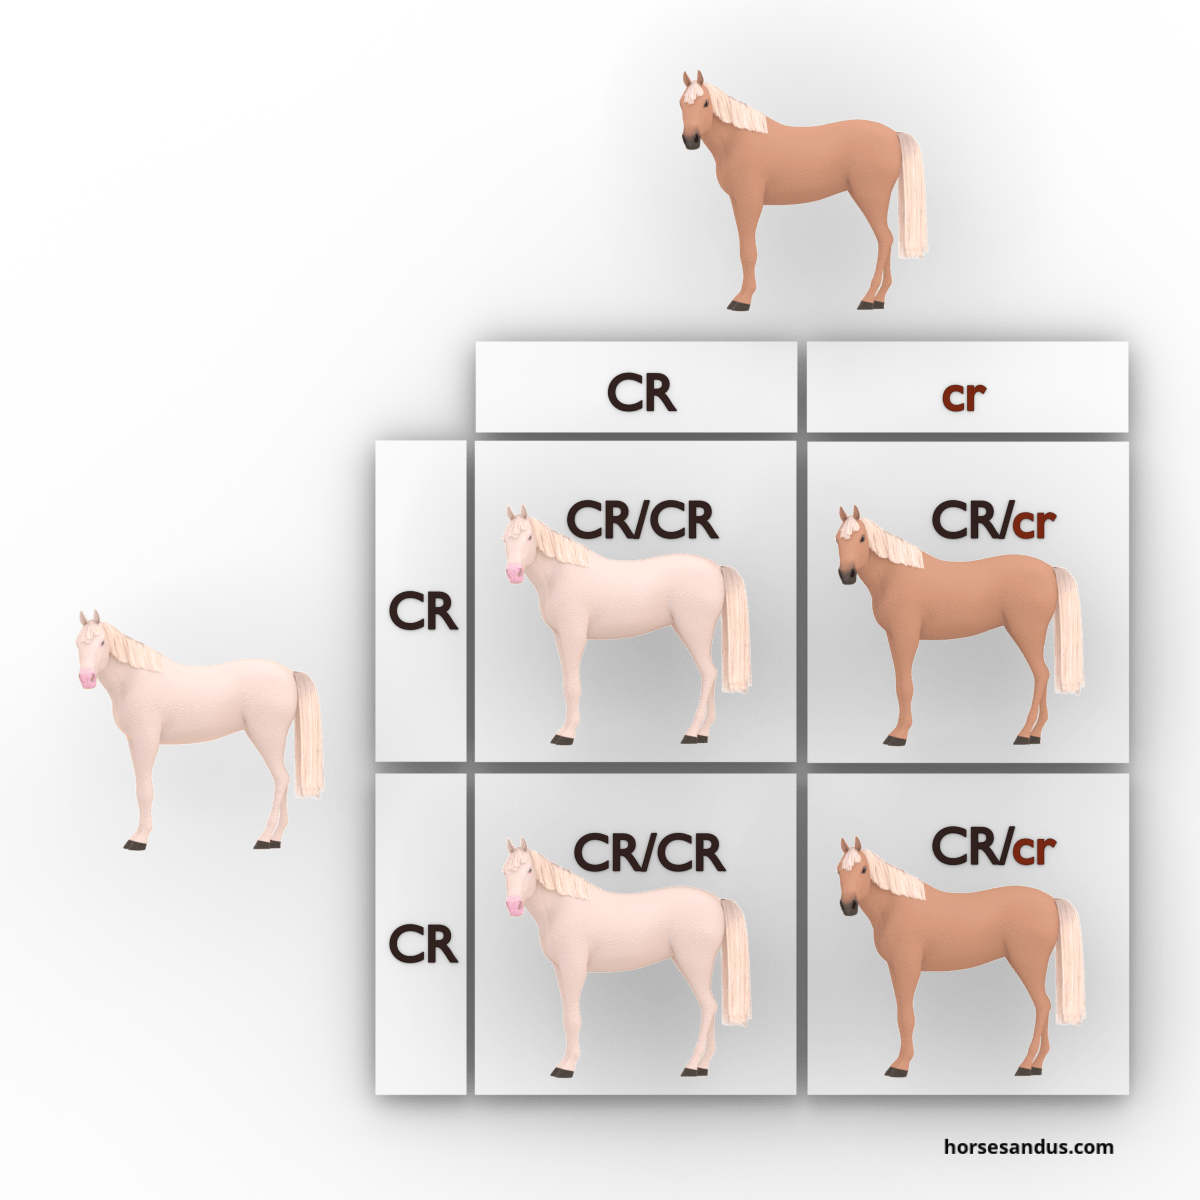 equine cream dilution gene - cremello and palomino